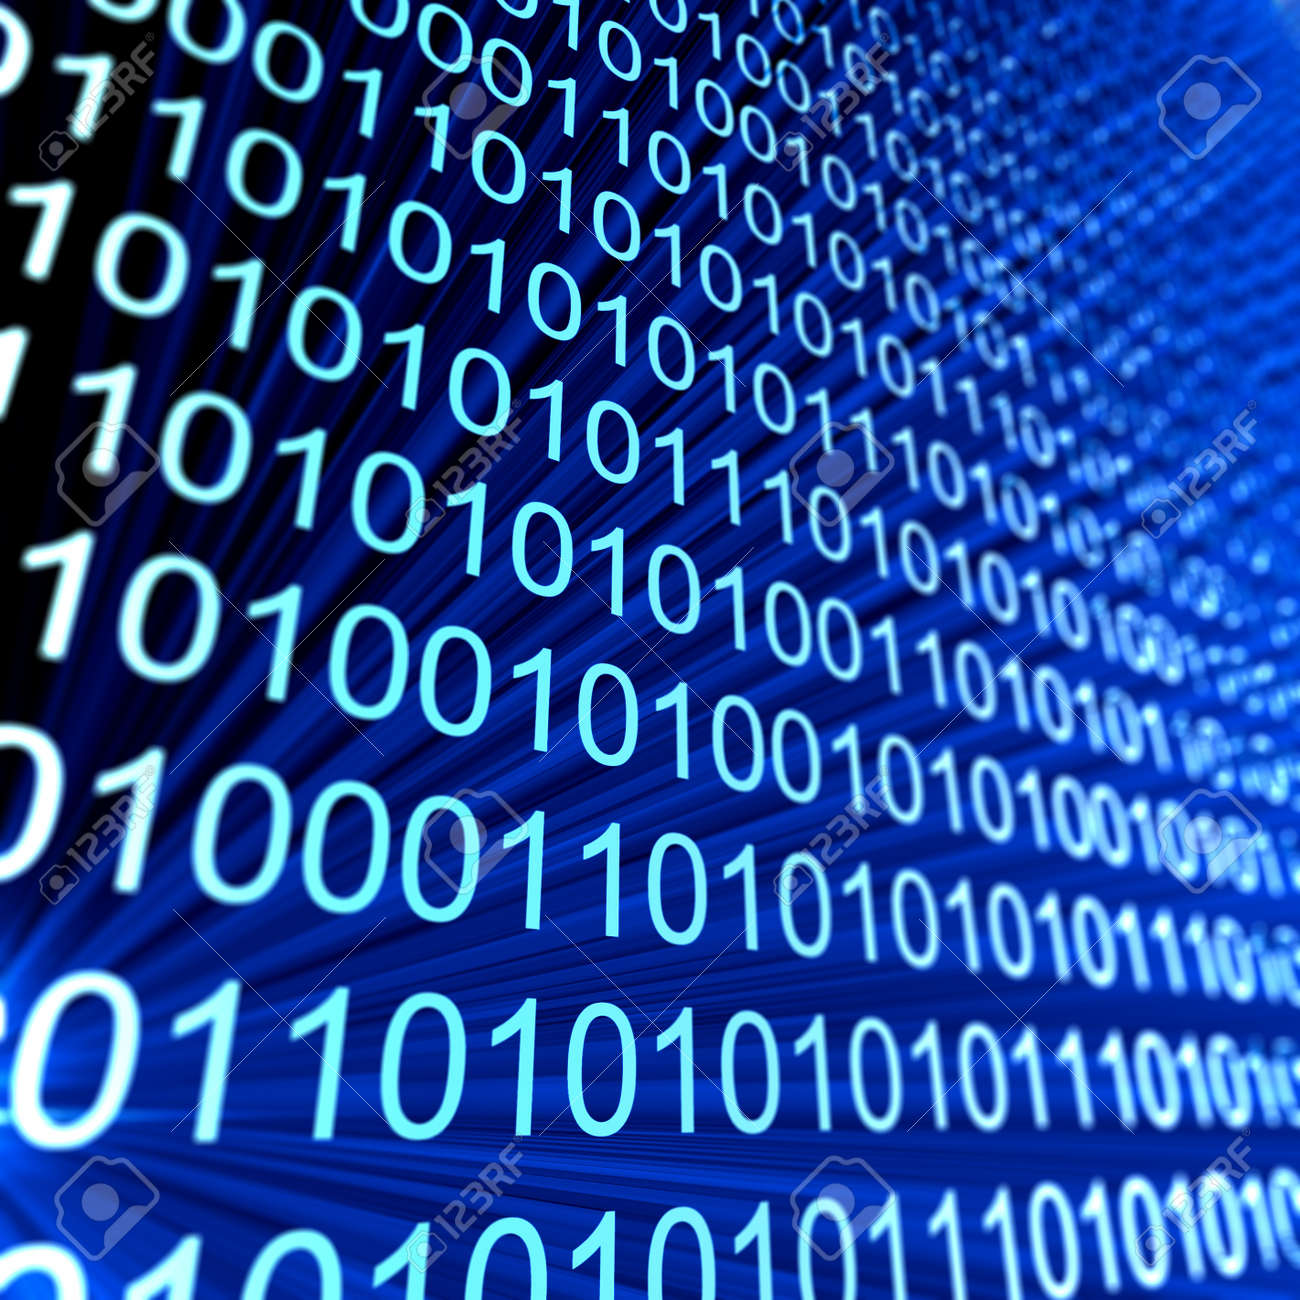 Code numbers. Computer data coding Stock Photo - 10358712